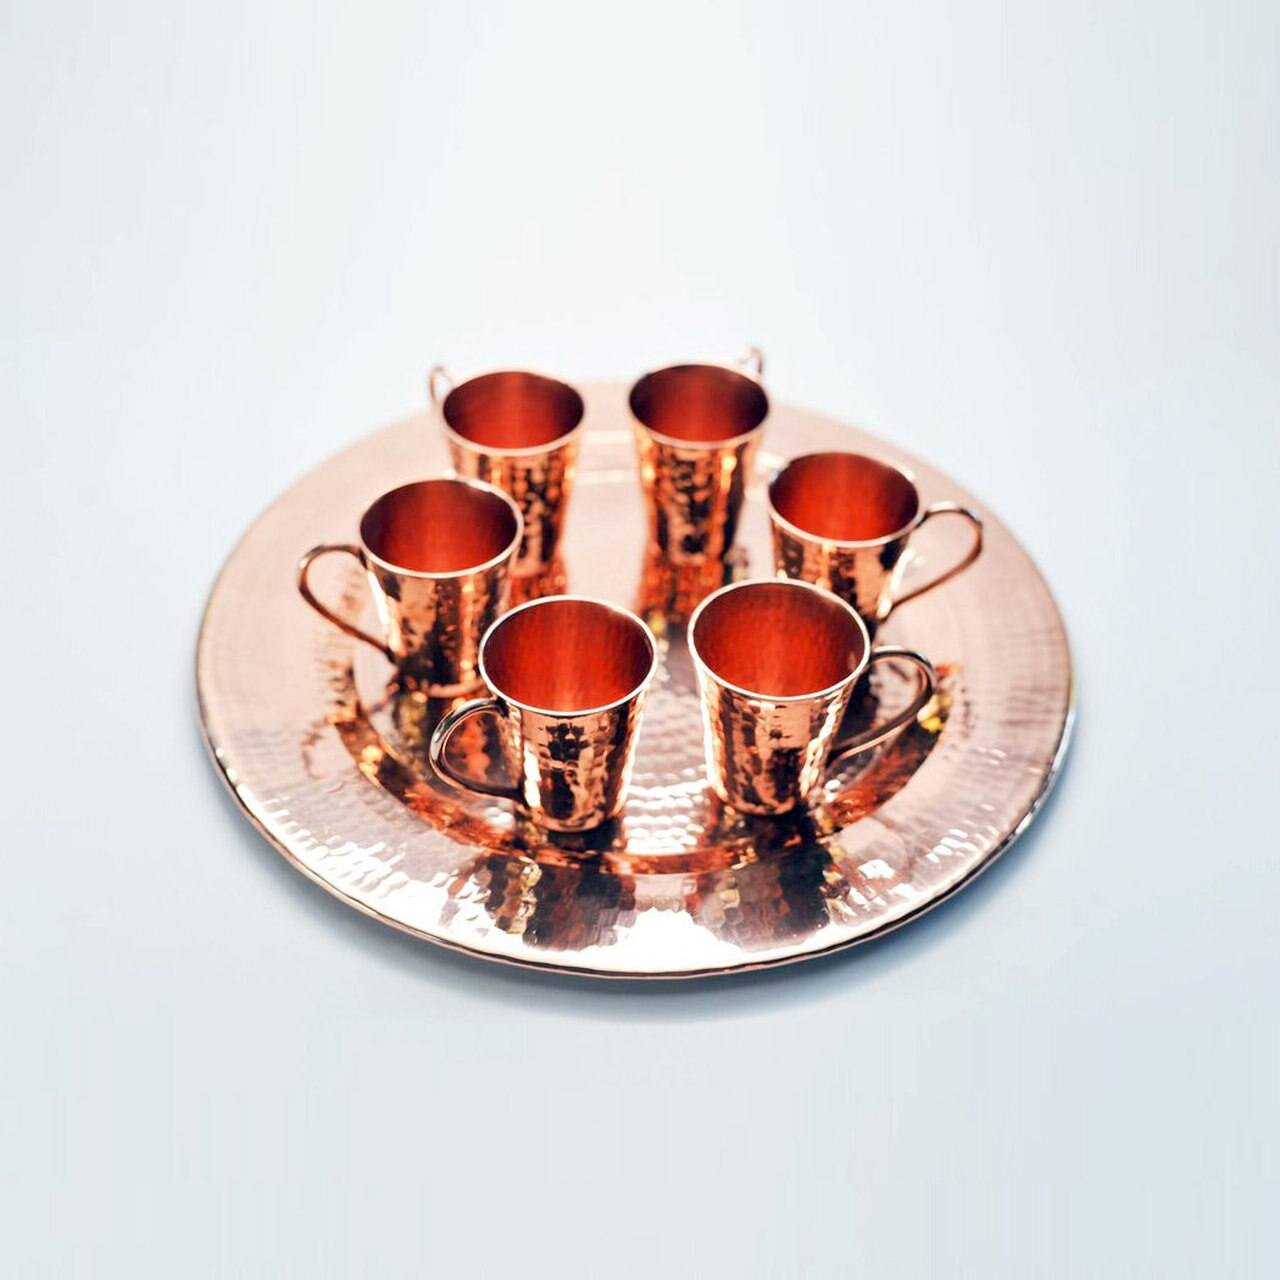 Sertodo Copper Gunslinger Mini Mule Sippy Cup Flight Set Kitchen and Dining Sertodo Copper